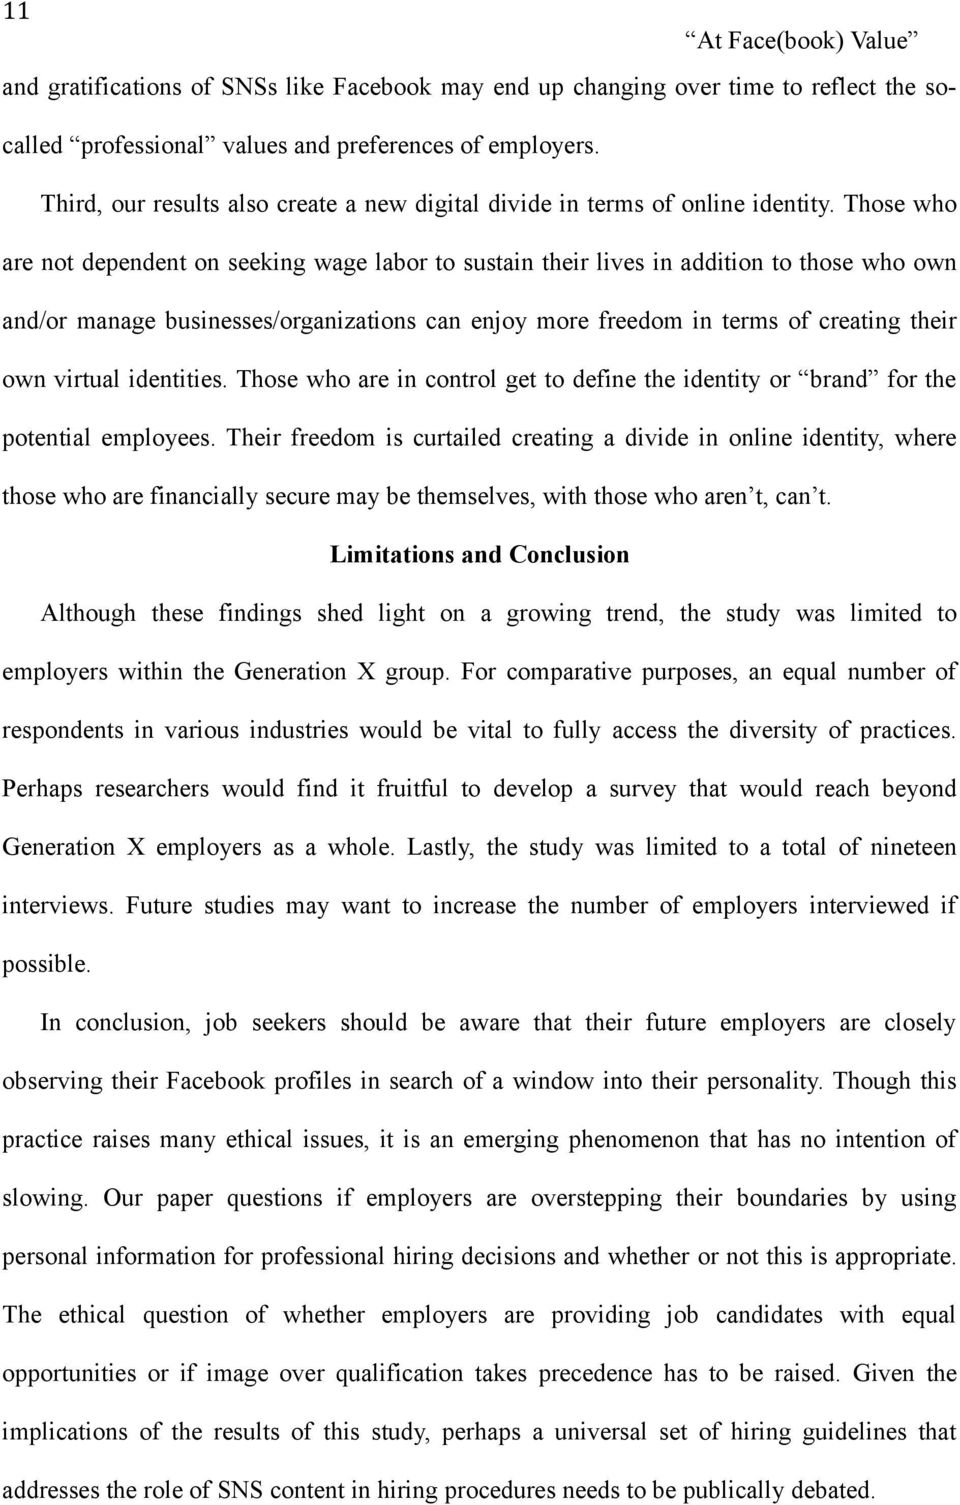 Those who are not dependent on seeking wage labor to sustain their lives in addition to those who own and/or manage businesses/organizations can enjoy more freedom in terms of creating their own